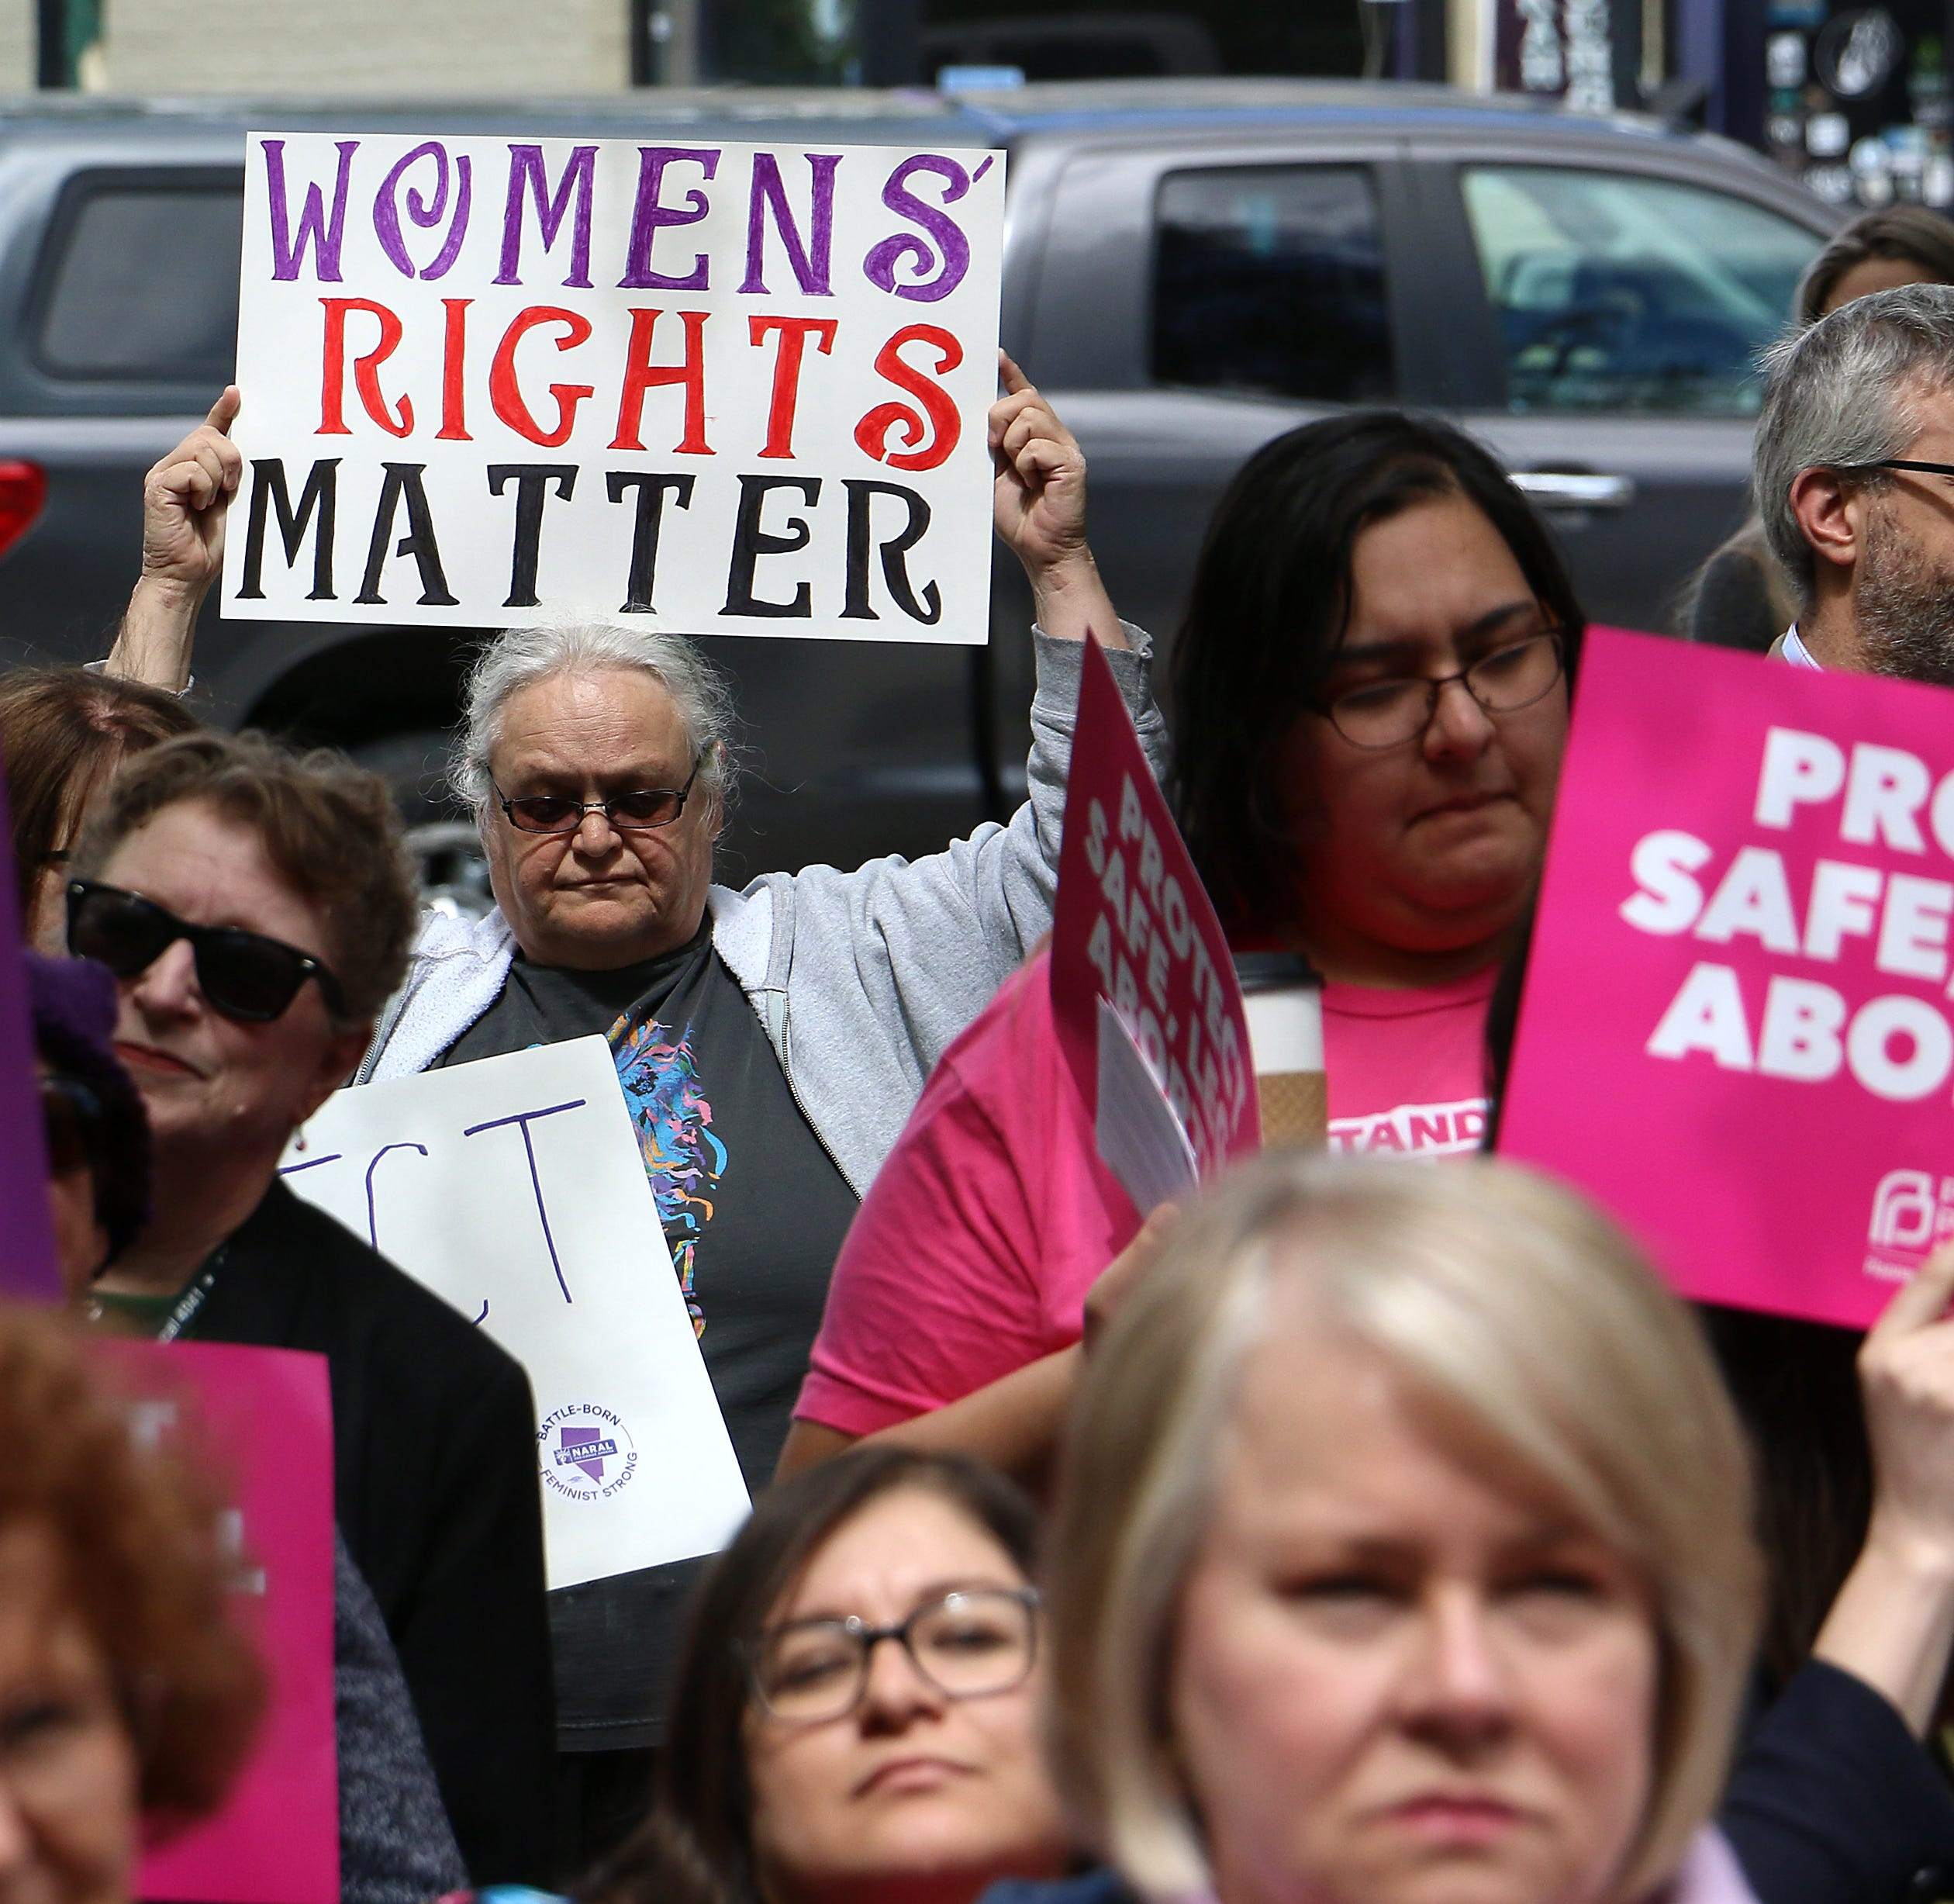 Nevada advances abortion decriminalization bill amid protests over Alabama's abortion ban